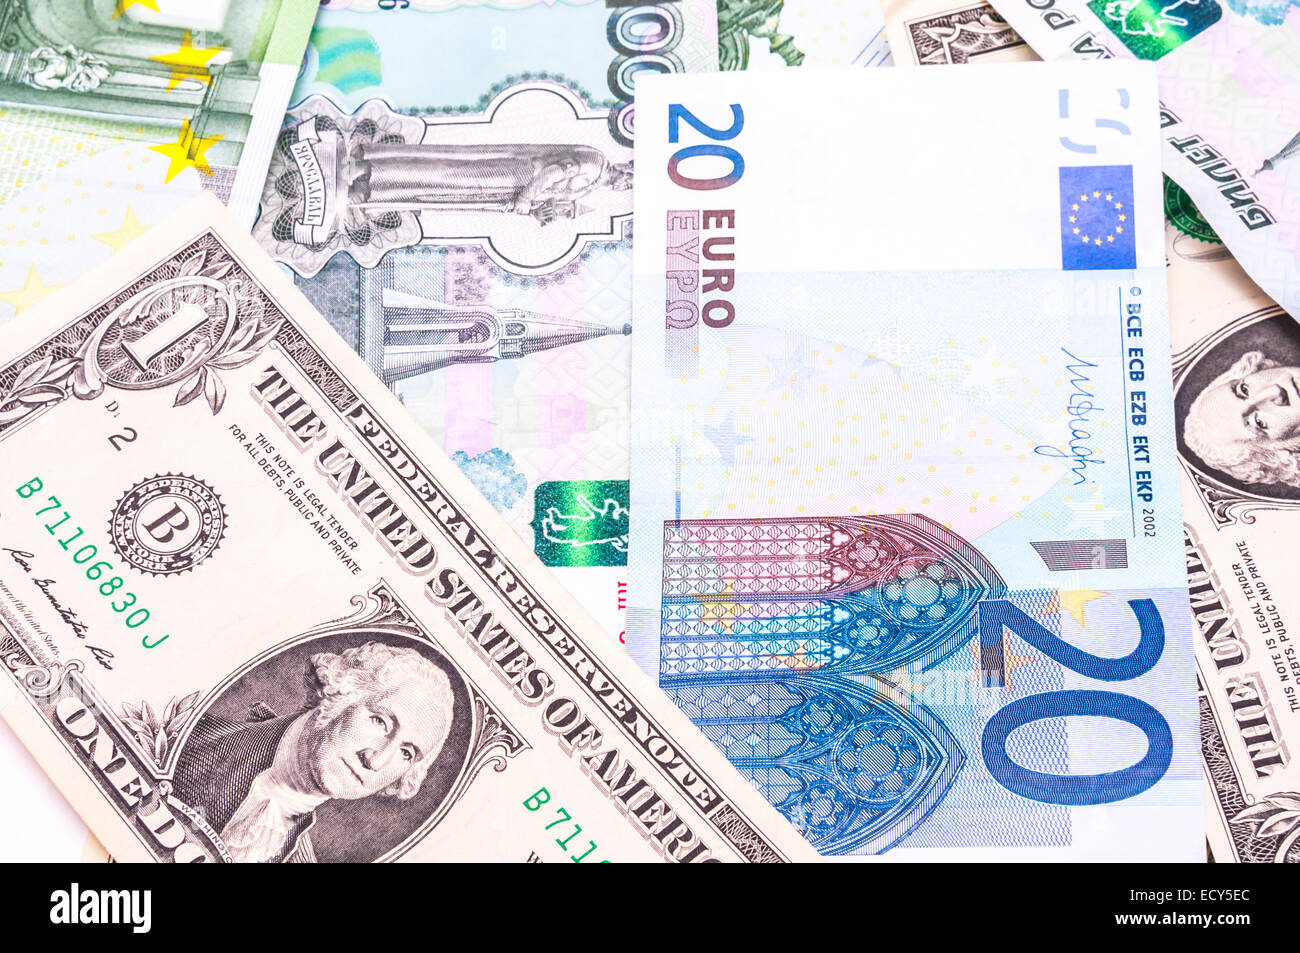 Paper Money Collection Stock Photos & Paper Money Collection